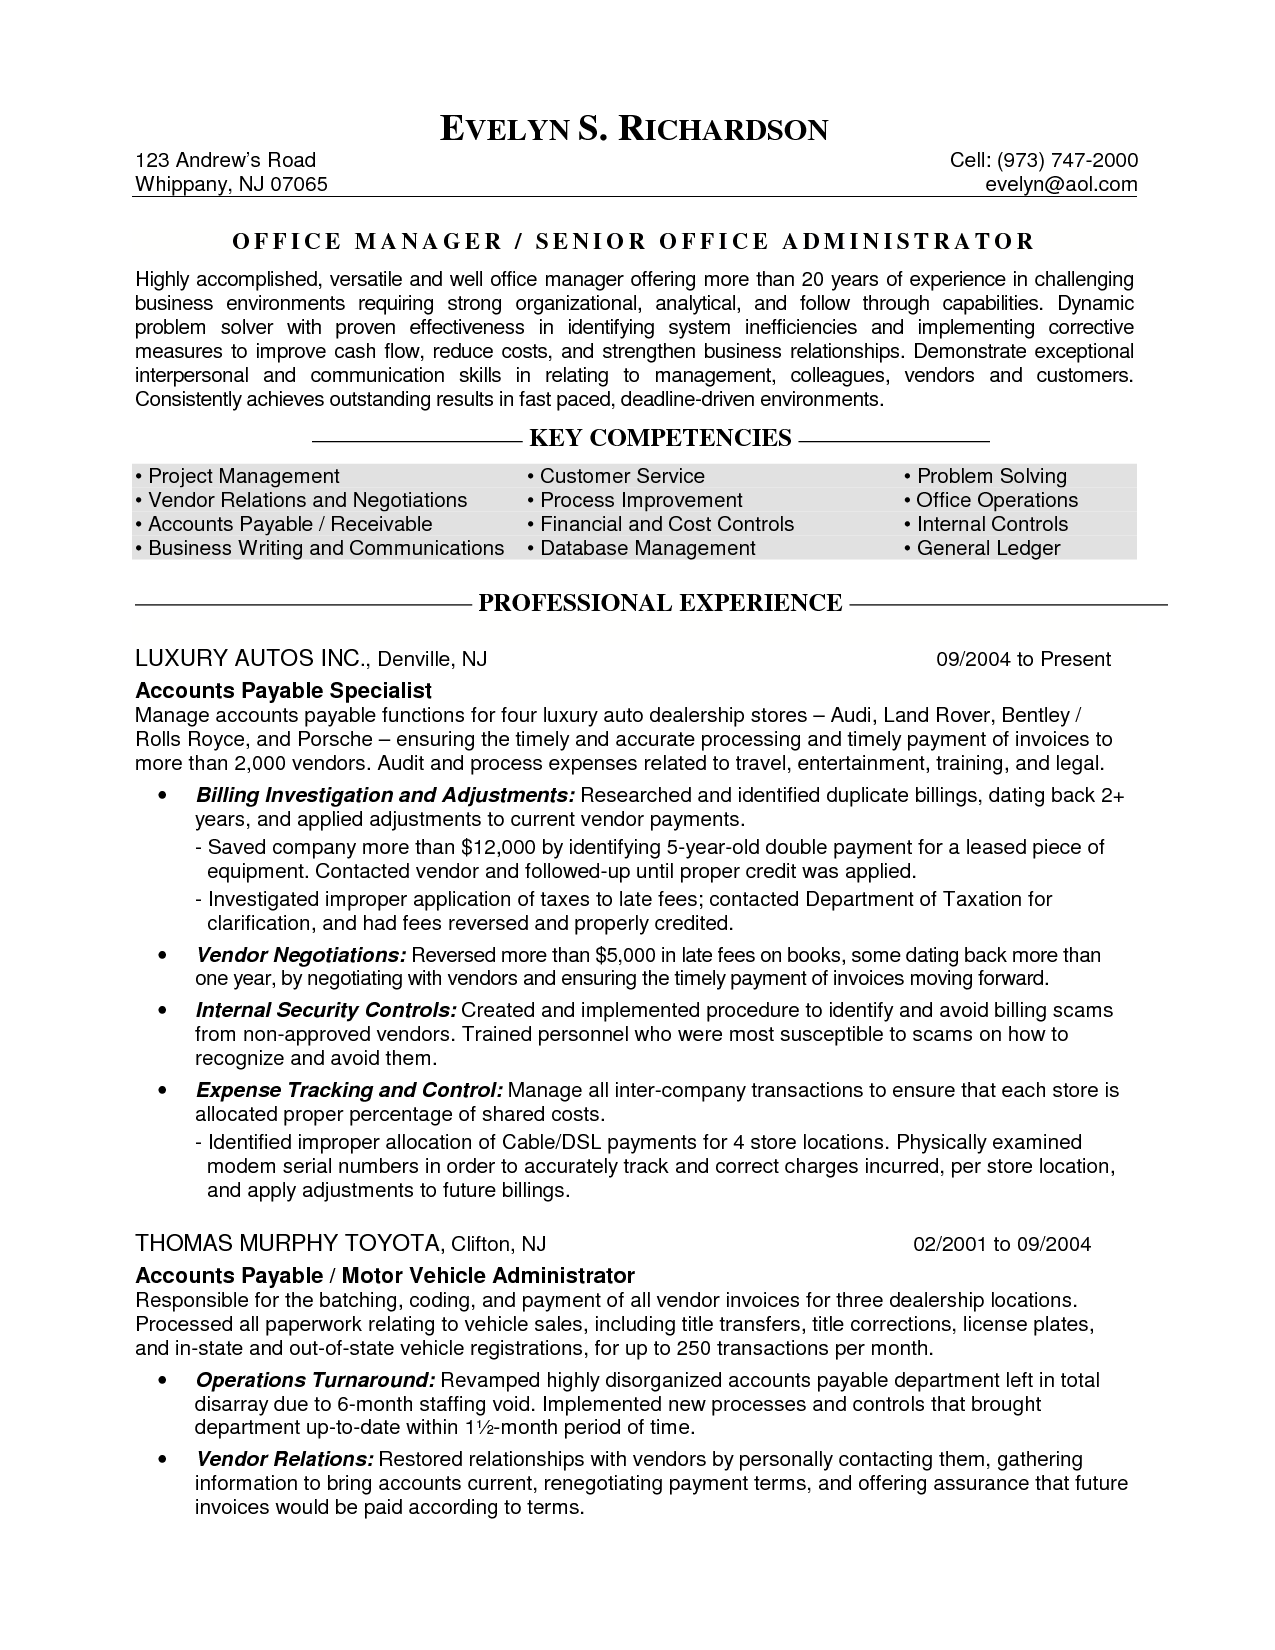 sample resume templates sample resume and resume templates on